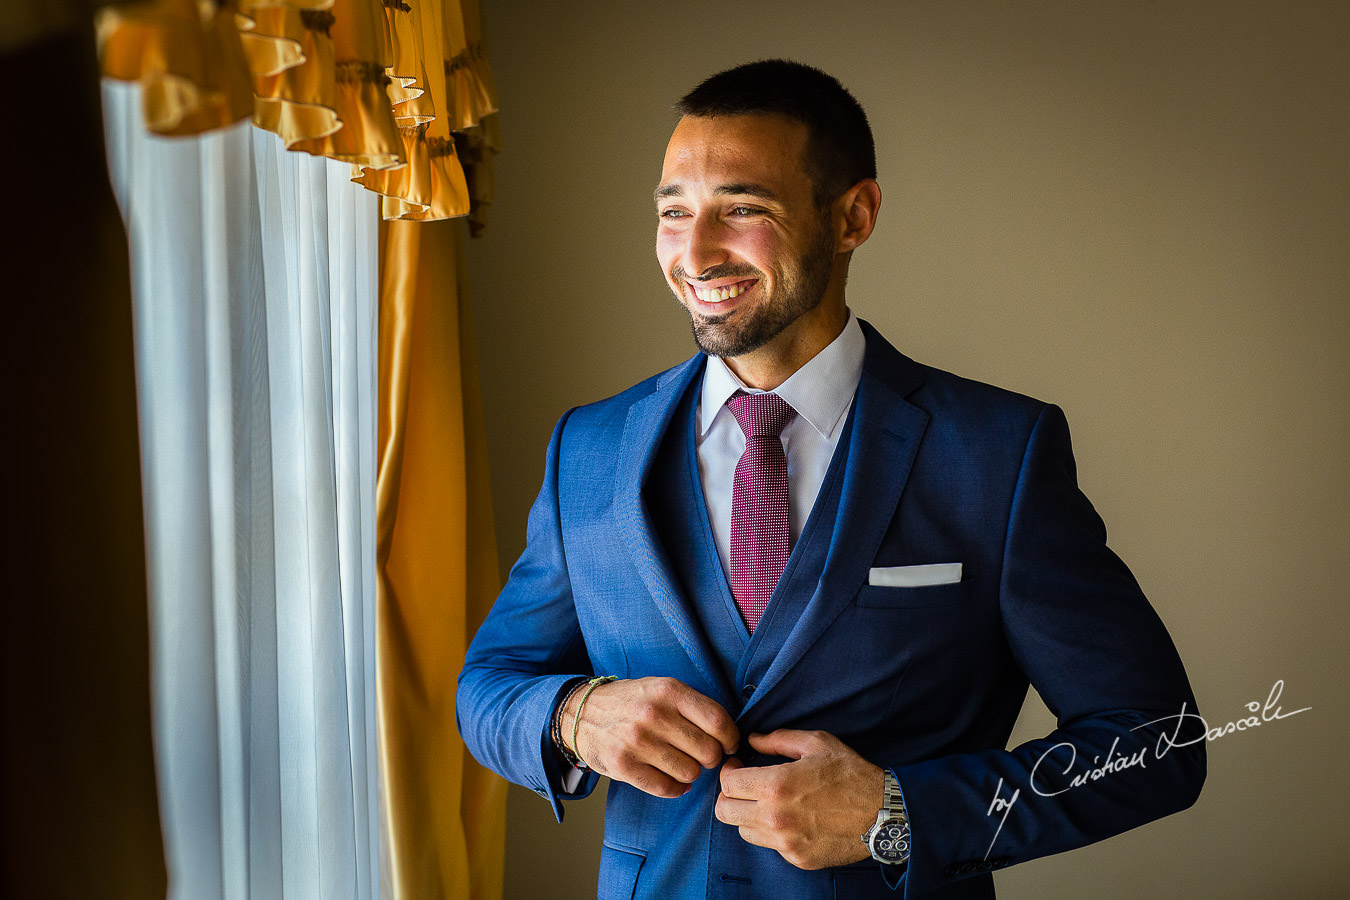 Groom's smile before his wedding, moments captured by Cyprus Wedding Photographer Cristian Dascalu at a beautiful wedding in Larnaka, Cyprus.